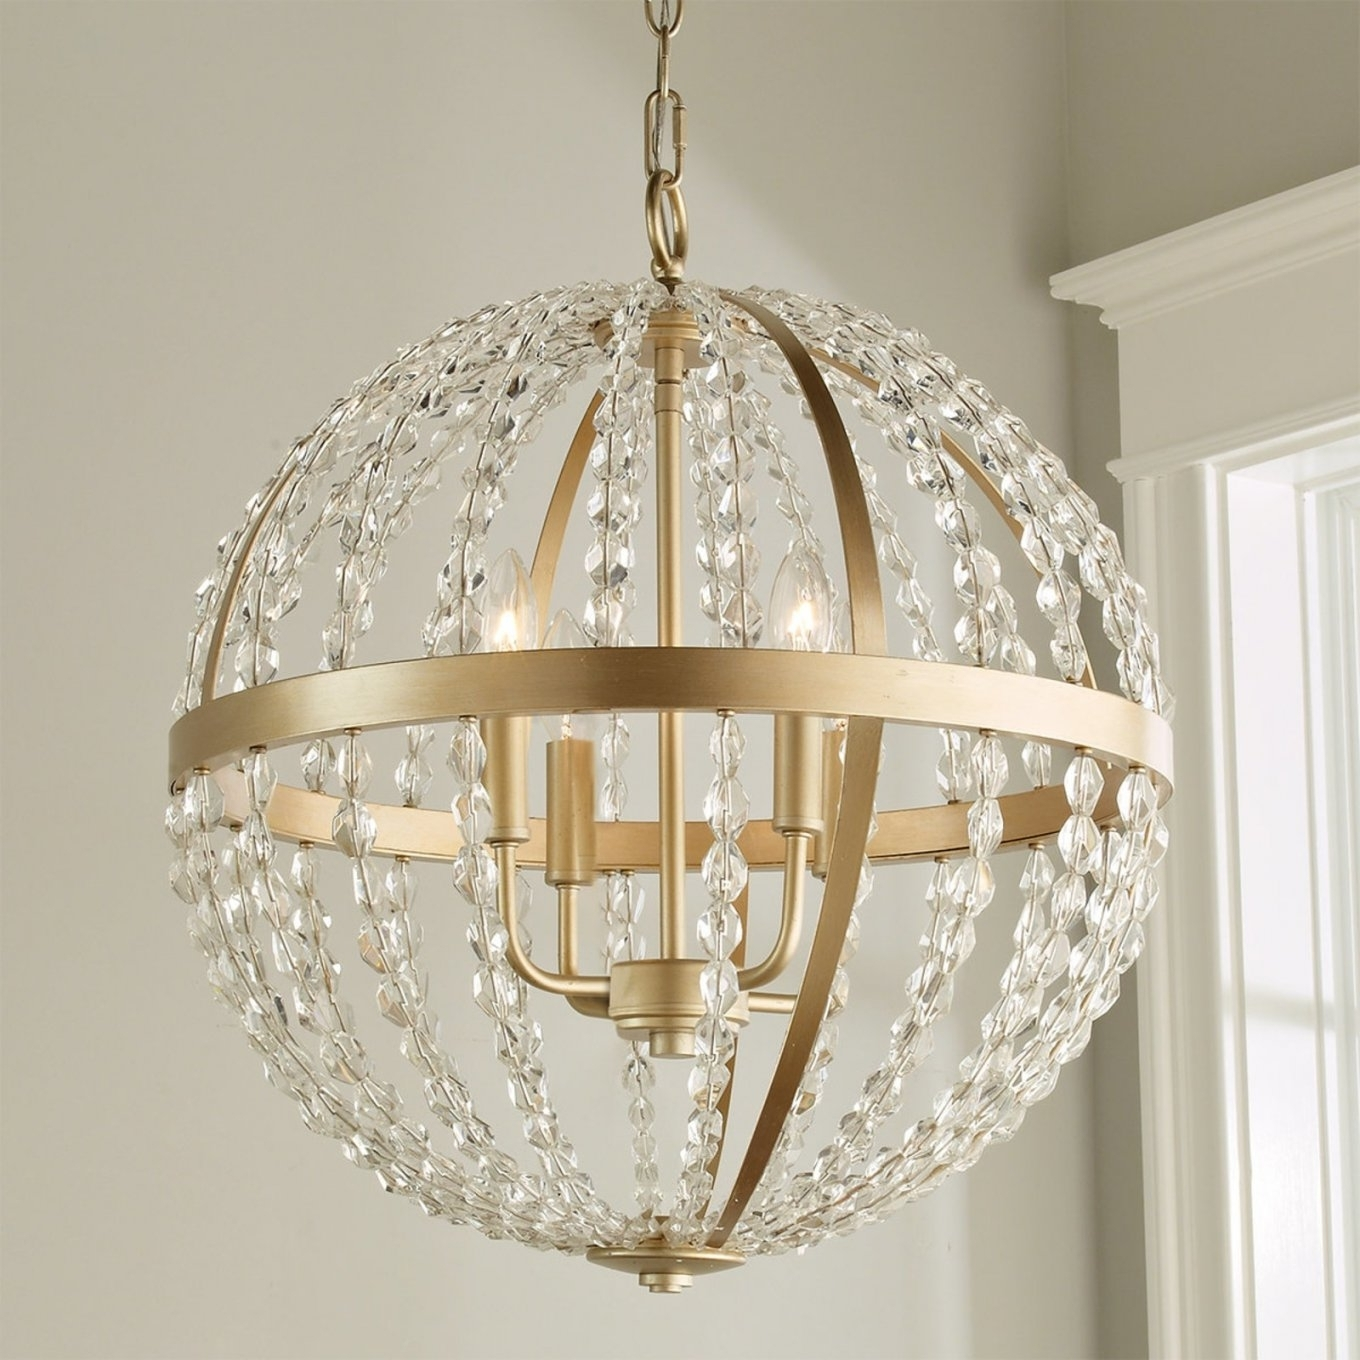 2019 Rona Chandelier Light Fixtures – Chandelier Designs With Regard To Outdoor Ceiling Lights At Rona (View 17 of 20)